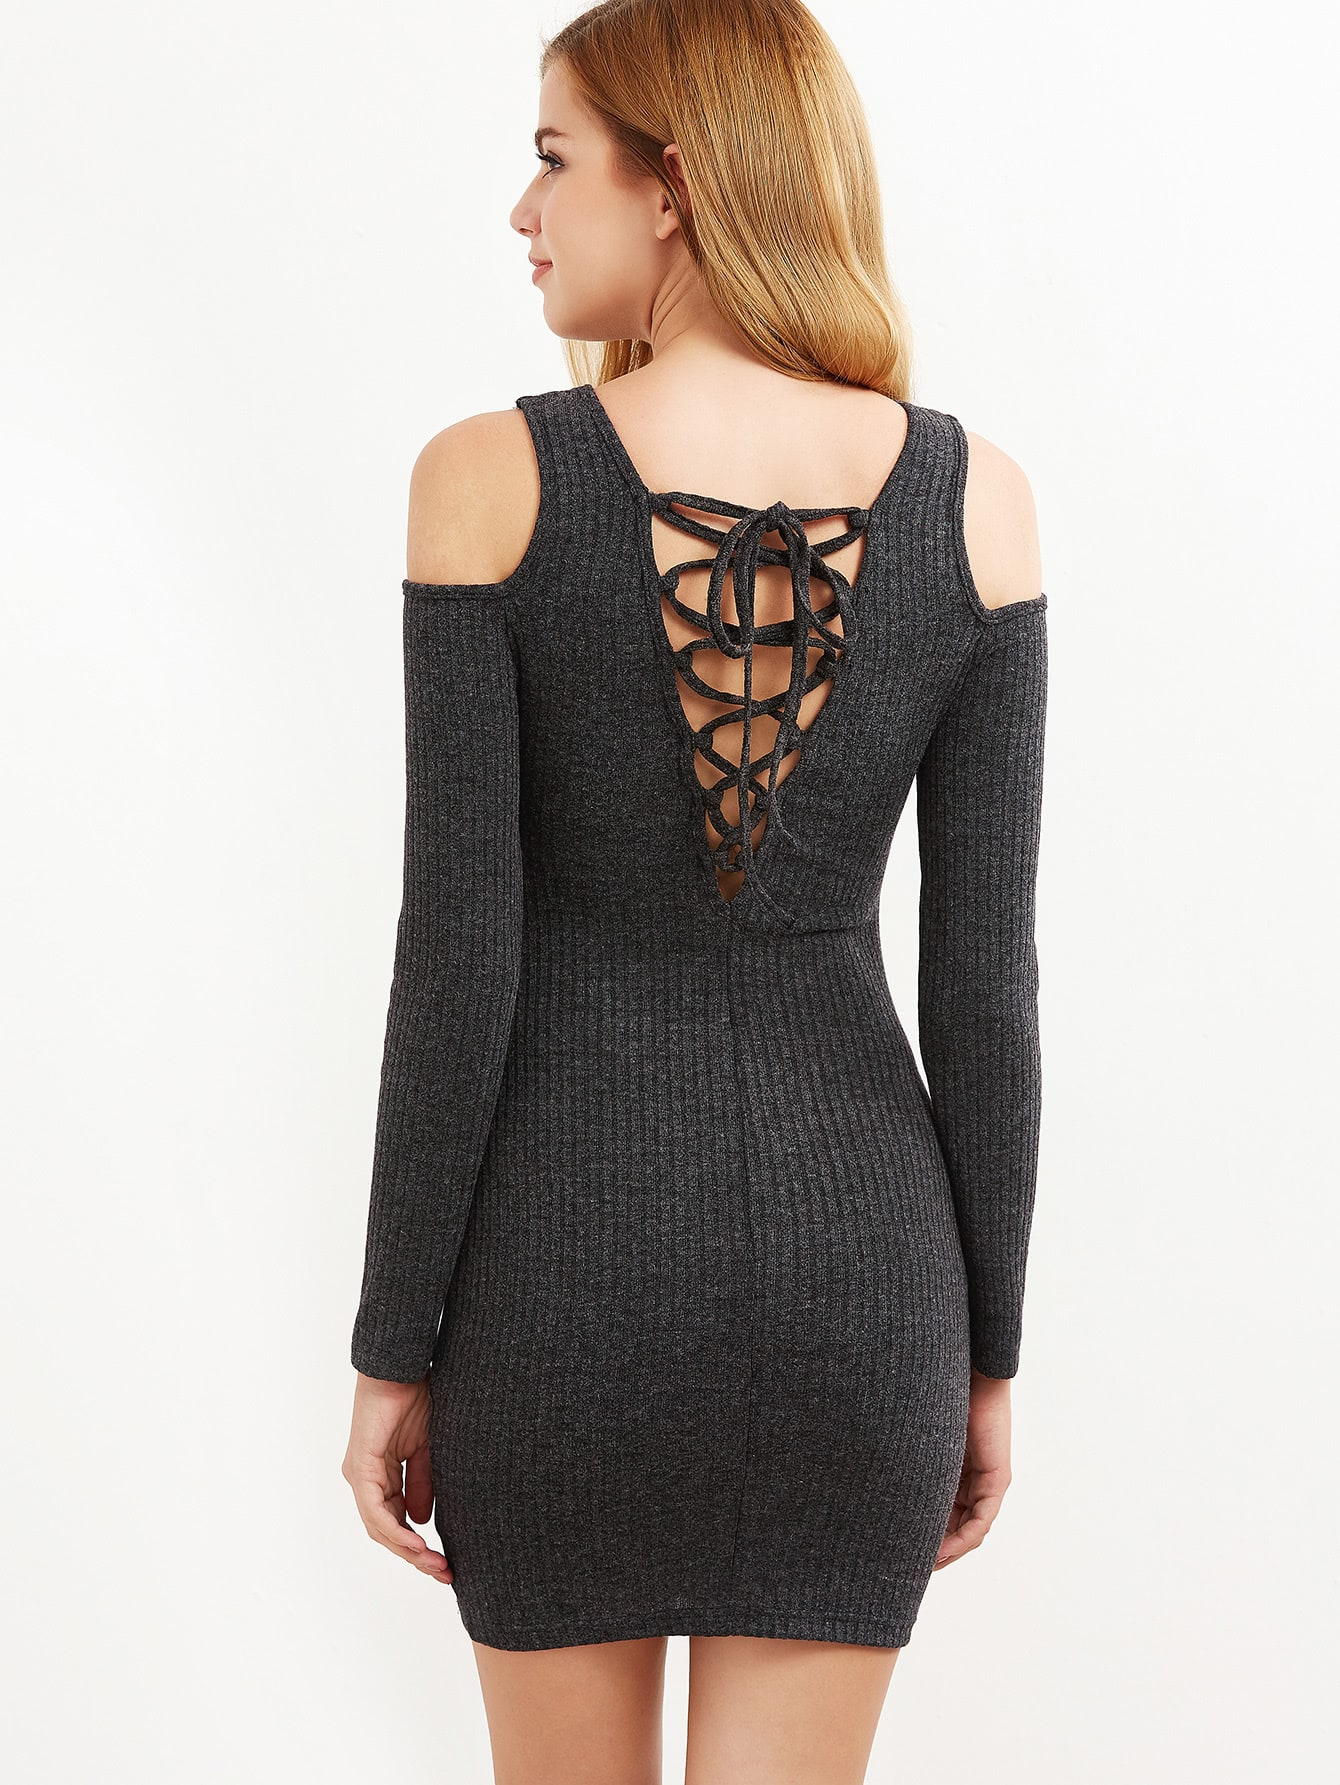 Grey Ribbed Knit Cold Shoulder Lace Up Bodycon Dress dress161108704